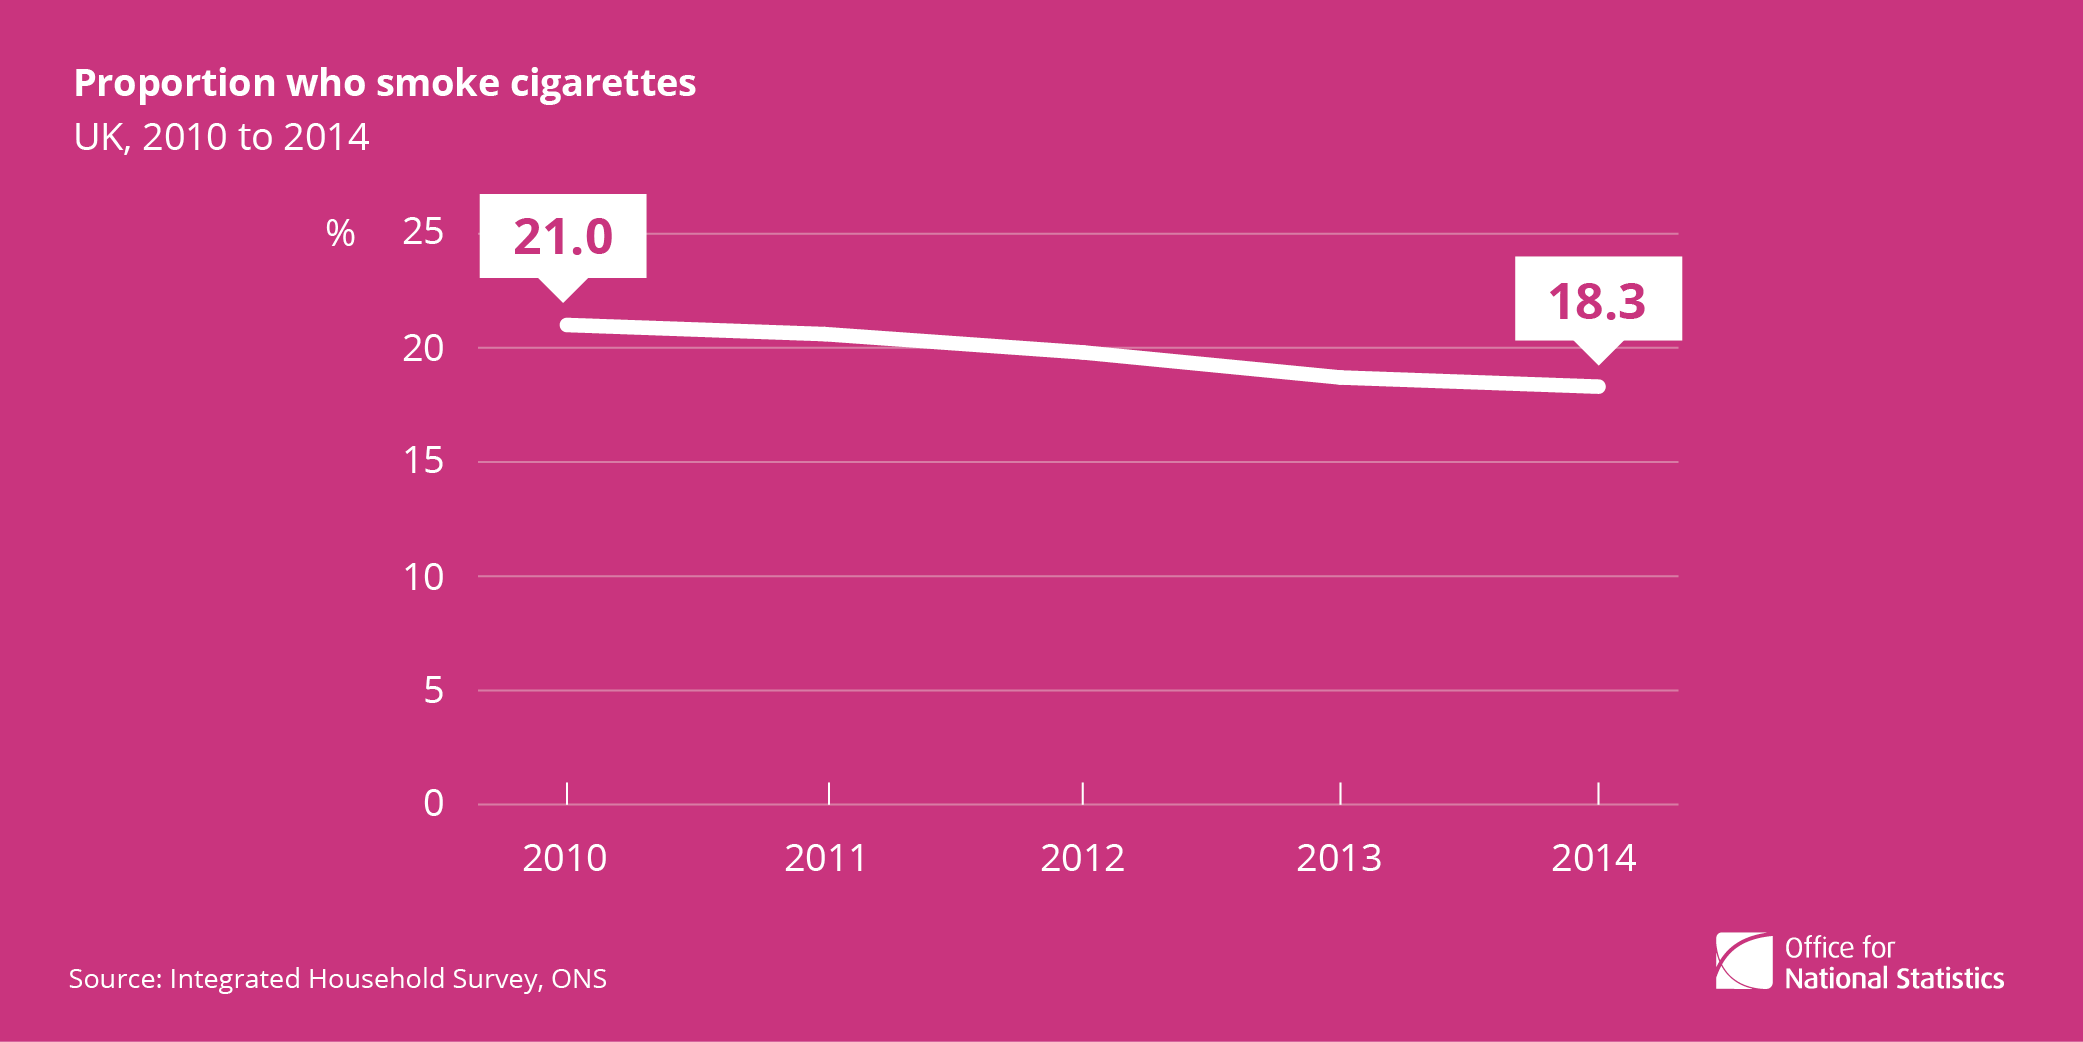 Four facts about smoking in the UK 2014